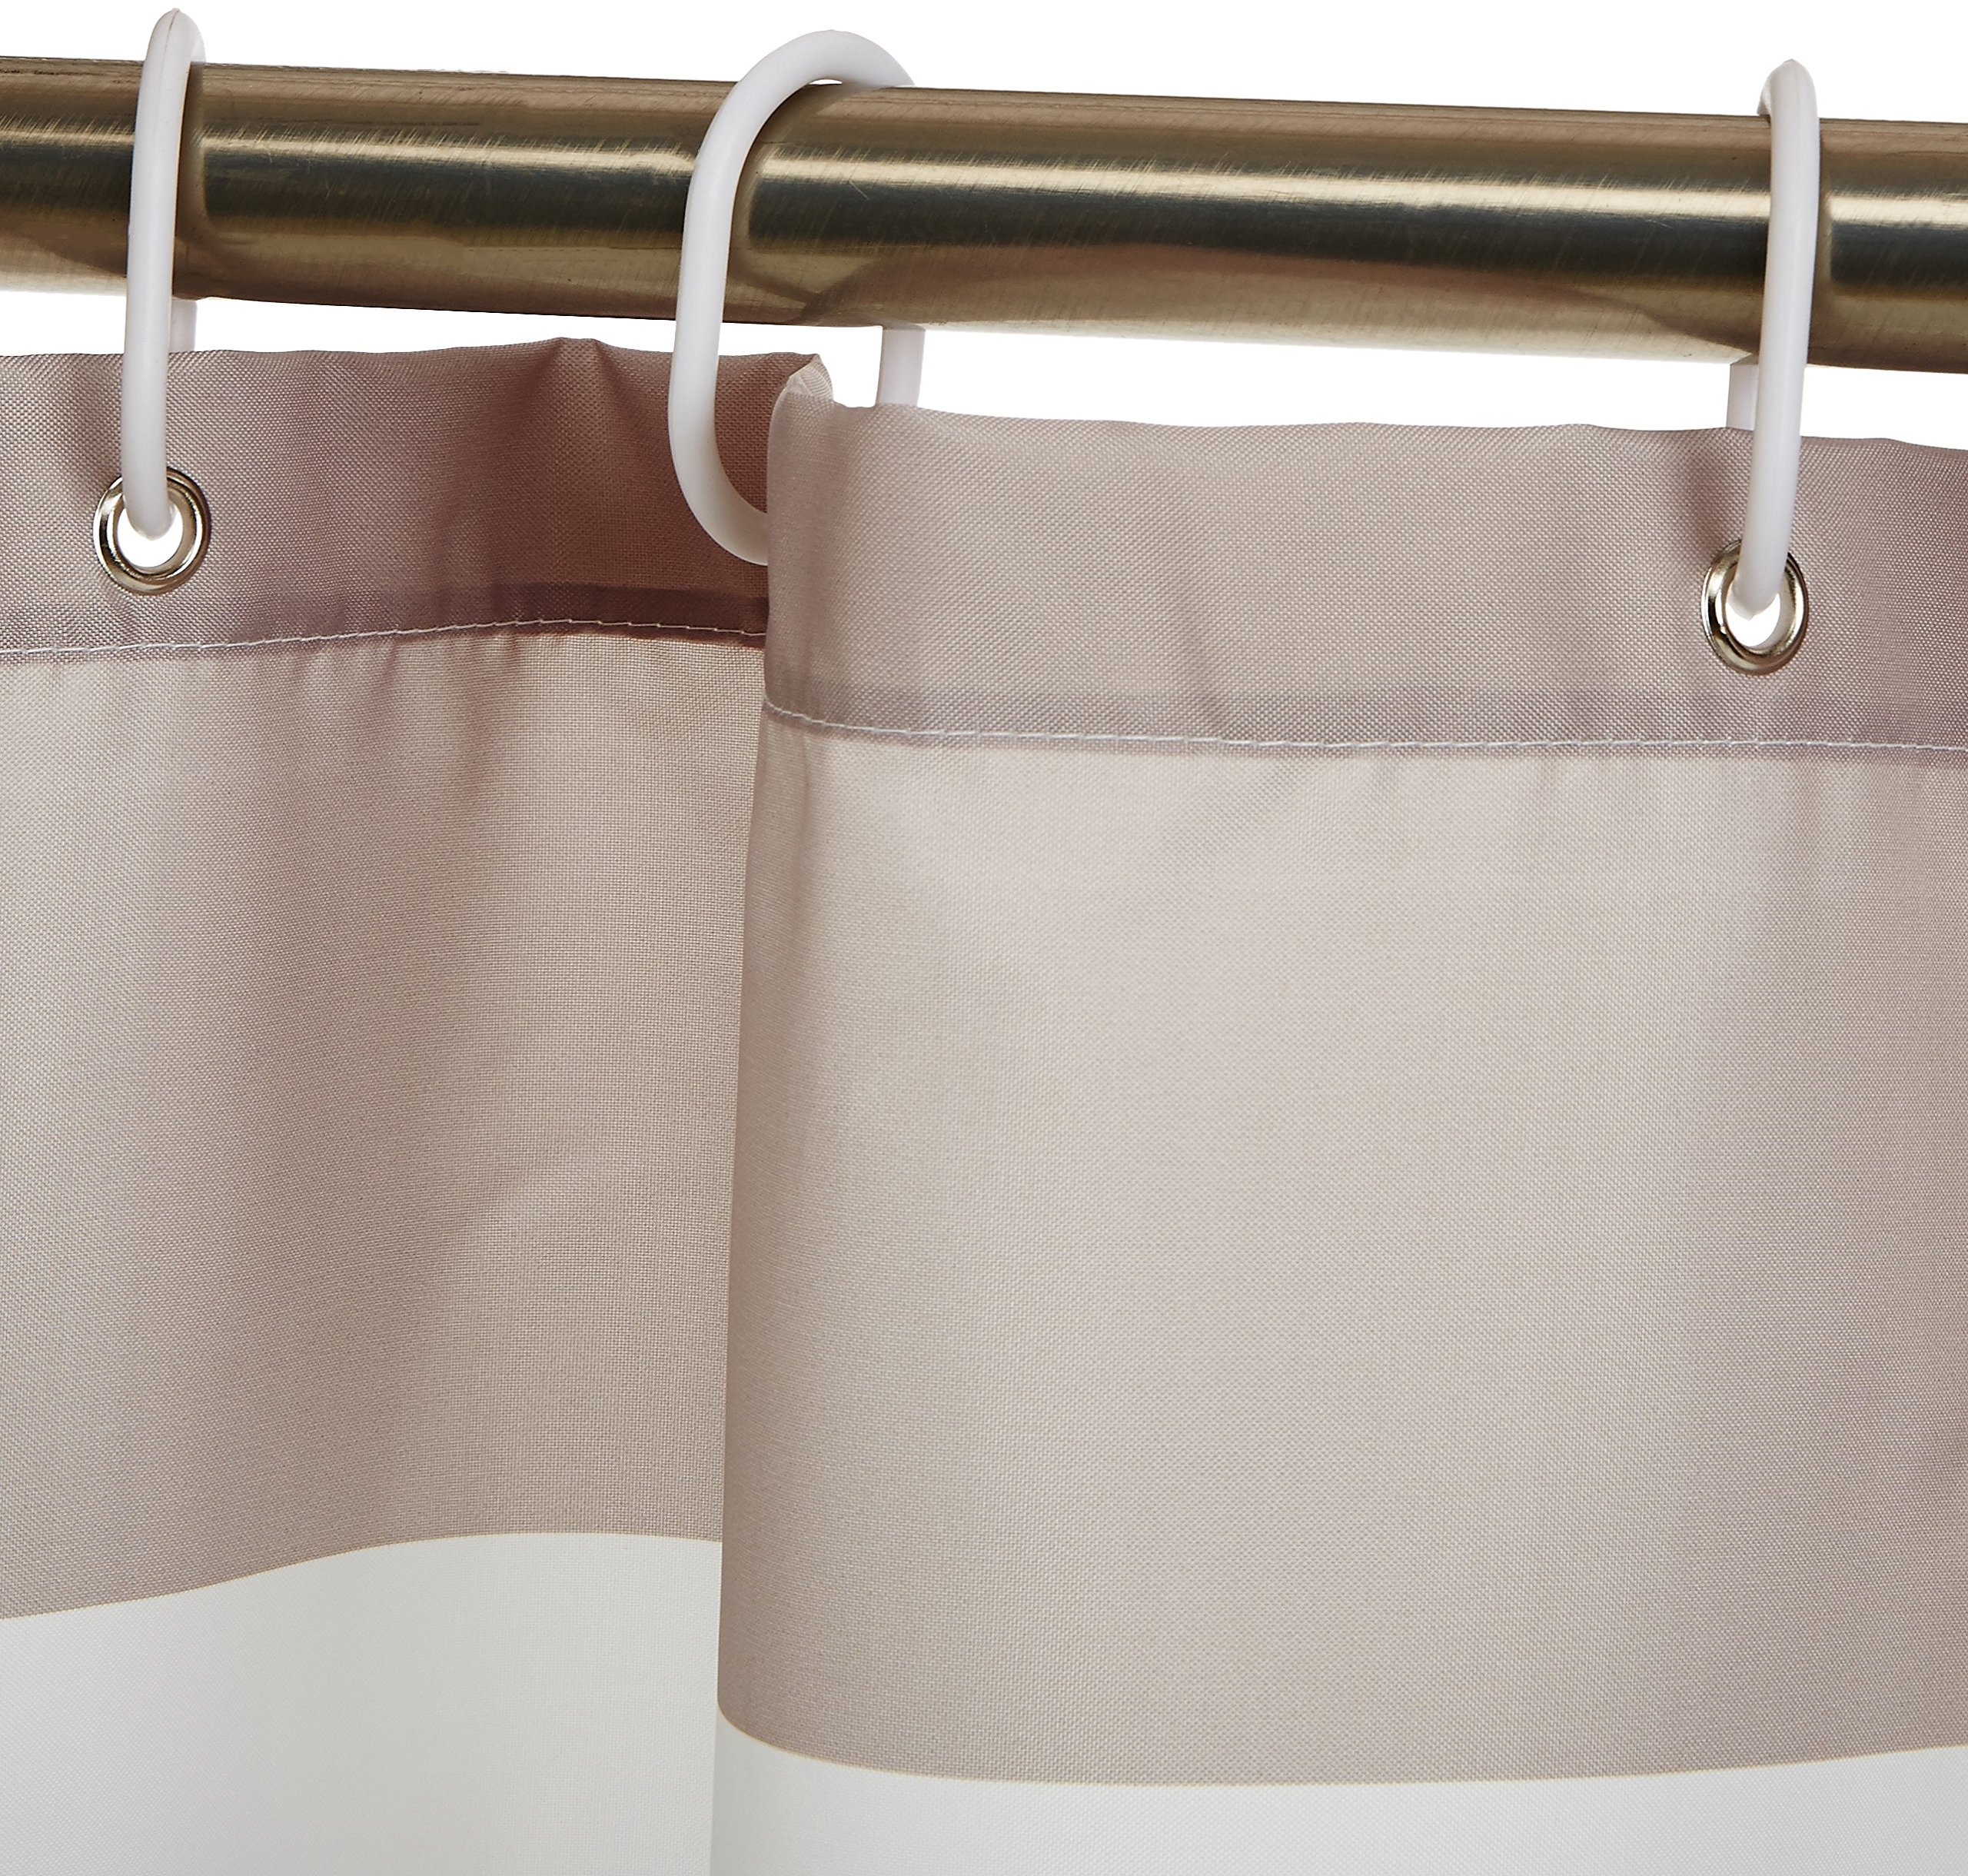 AmazonBasics Shower Curtain with Hooks (Grey Stripe) and Shower Curtain Liner (Clear) Set by AmazonBasics (Image #4)